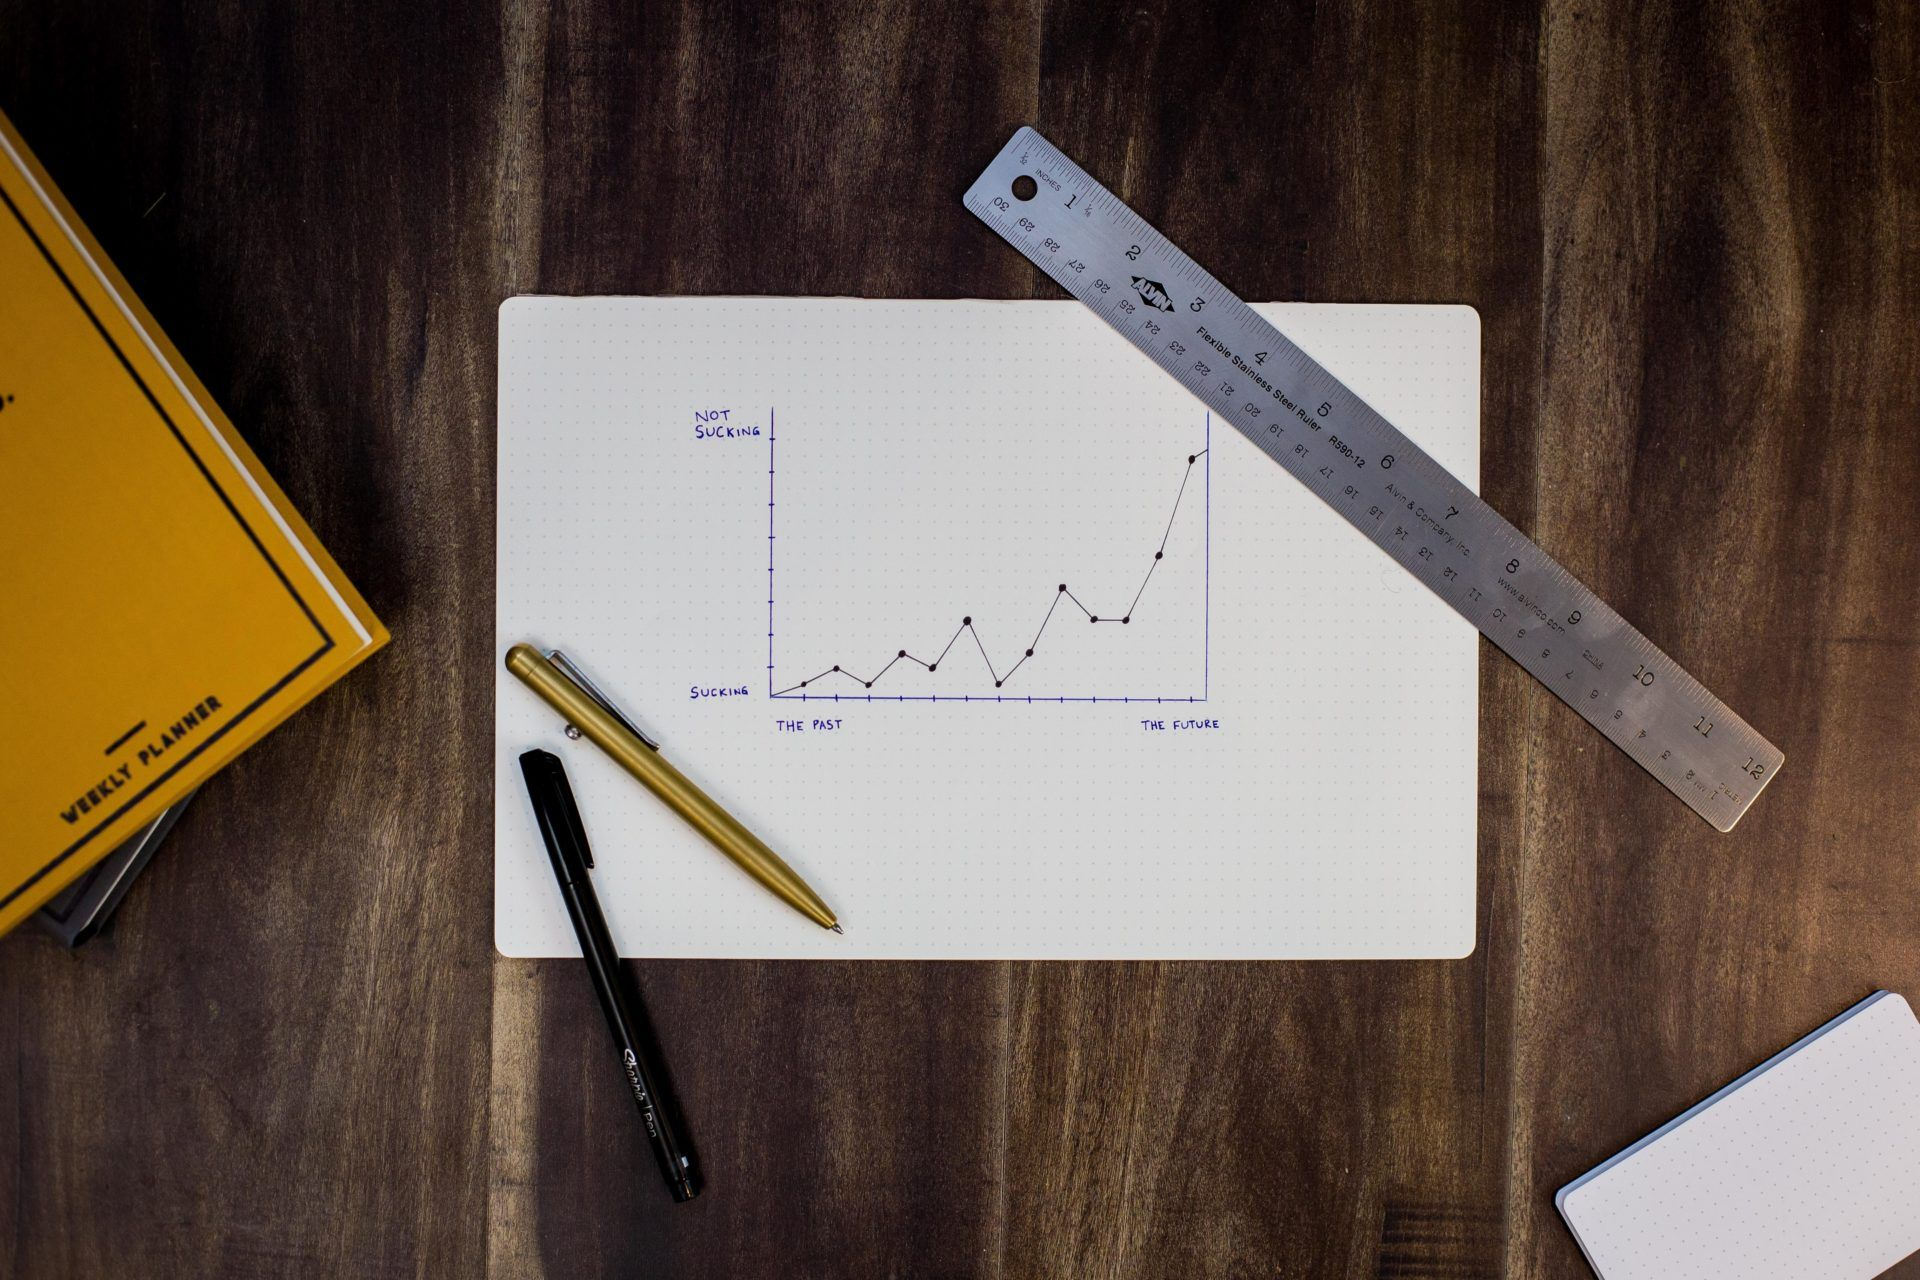 Line graph on white piece of paper with a ruler, pen, pencil, and book